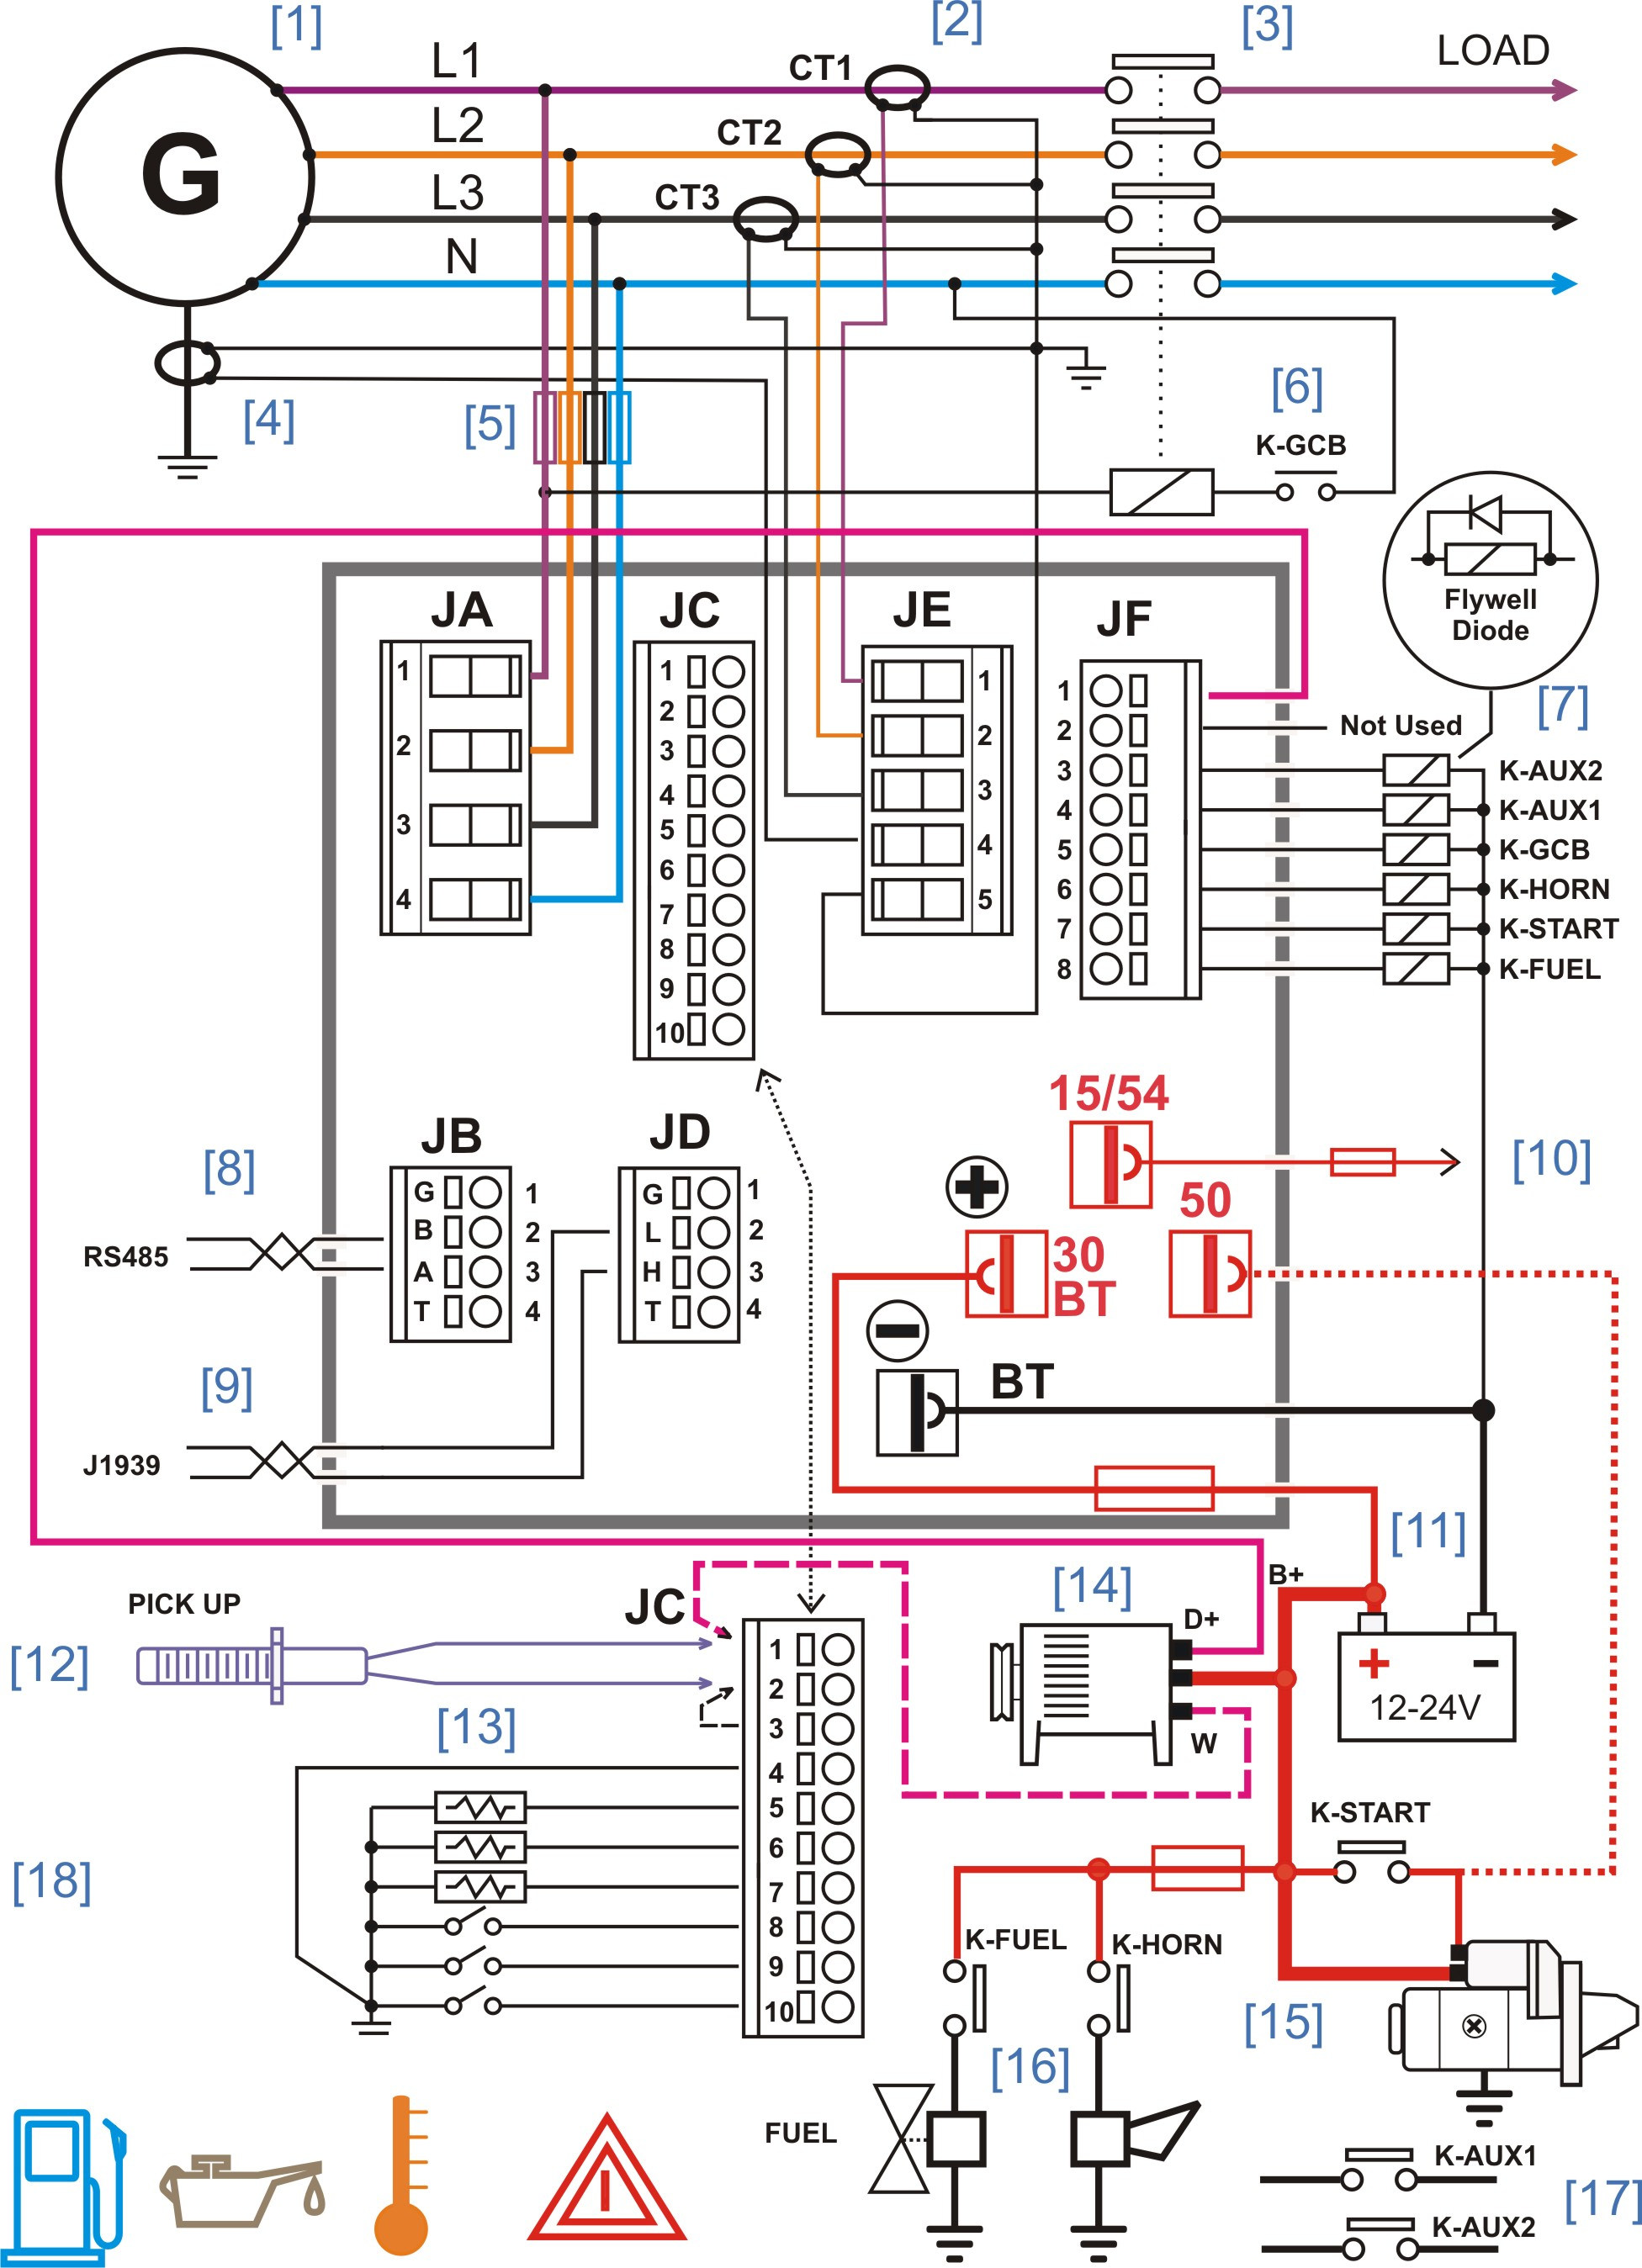 wiring diagram for a manual transfer switch the wiring diagram reliance transfer switch wiring diagram nilza wiring diagram